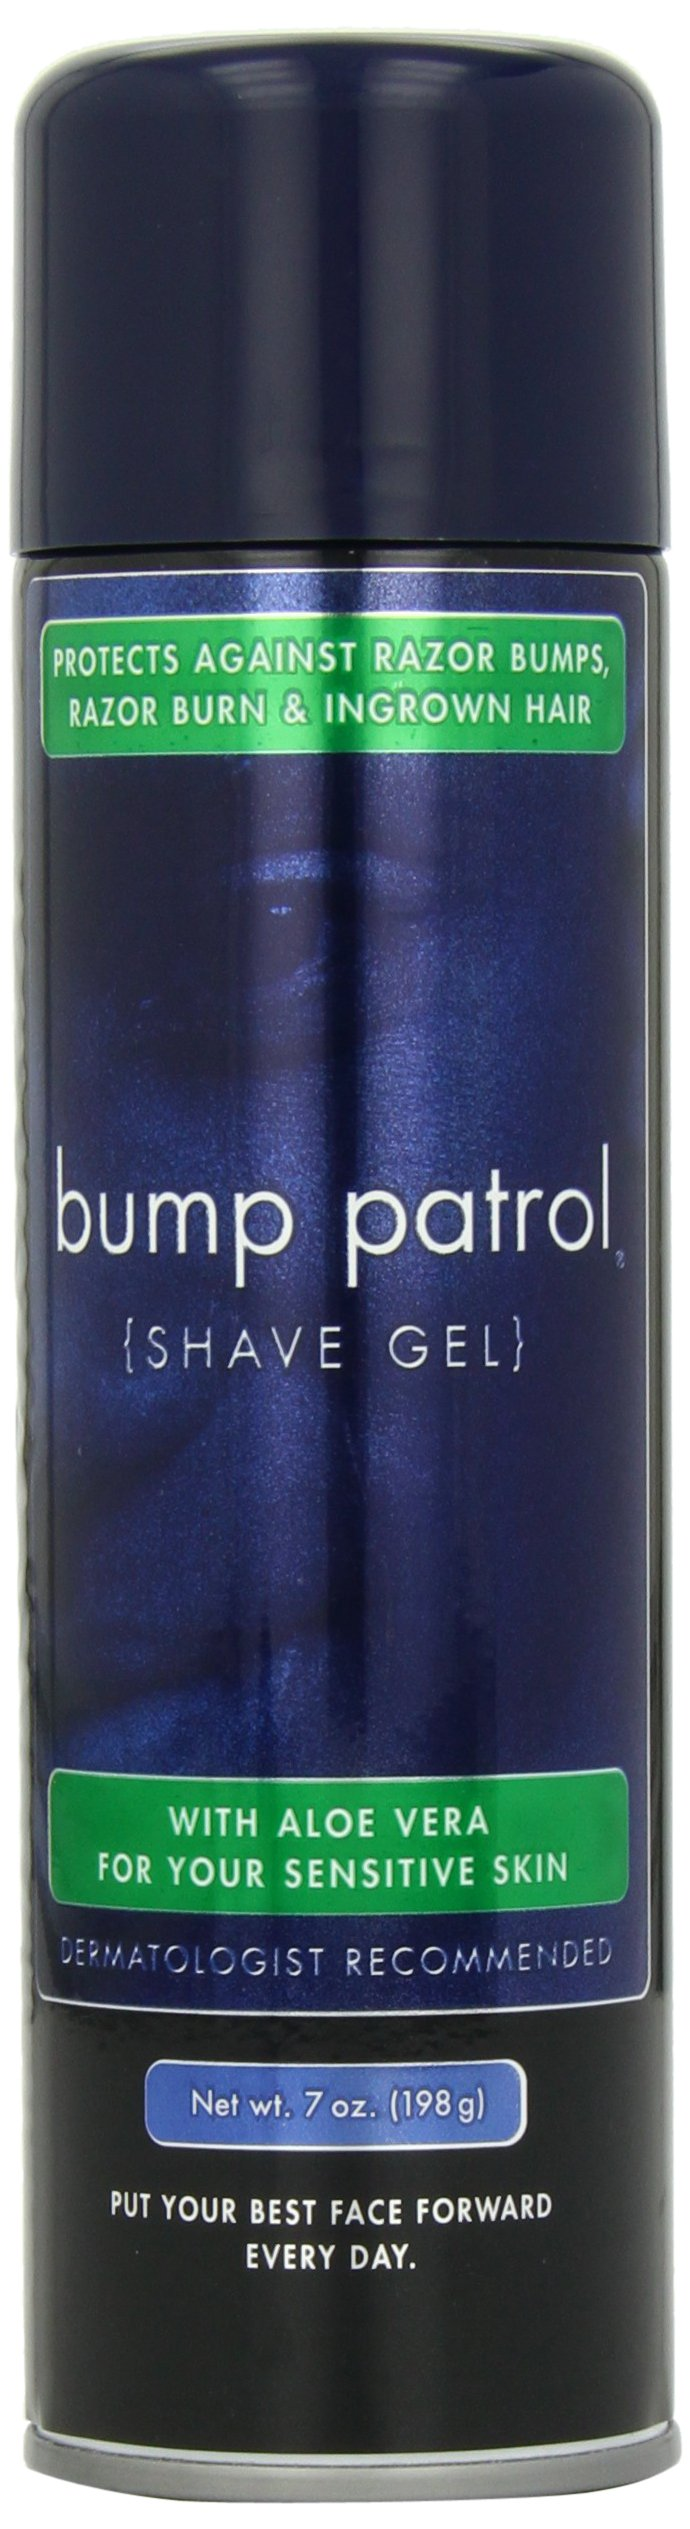 Bump Patrol Shave Gel with Aloe Vera, 7 Ounce